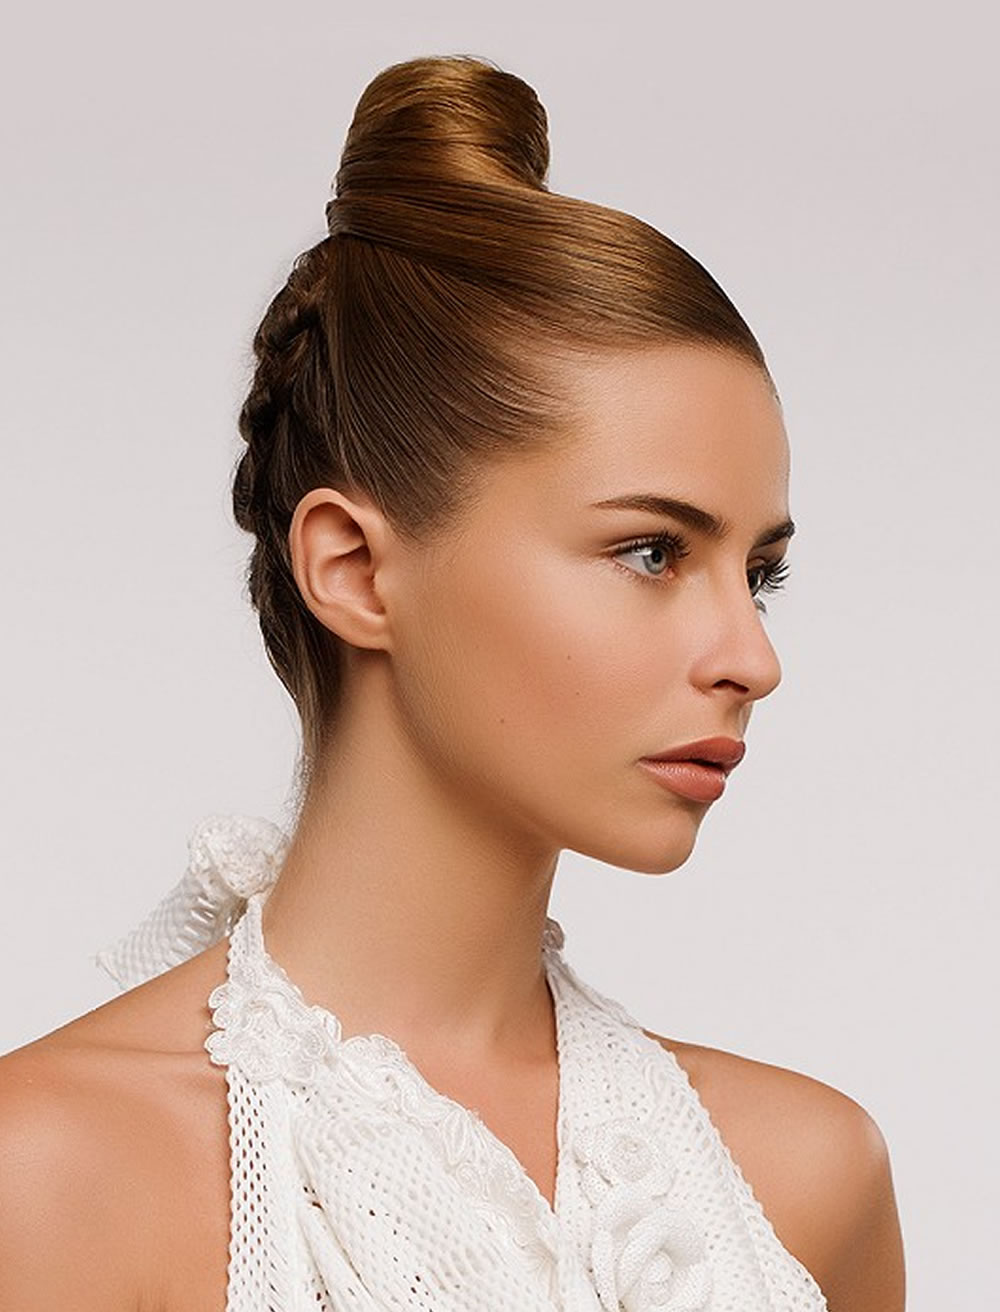 hair styles picture updo hairstyles for square oval faces 2018 2019 6112